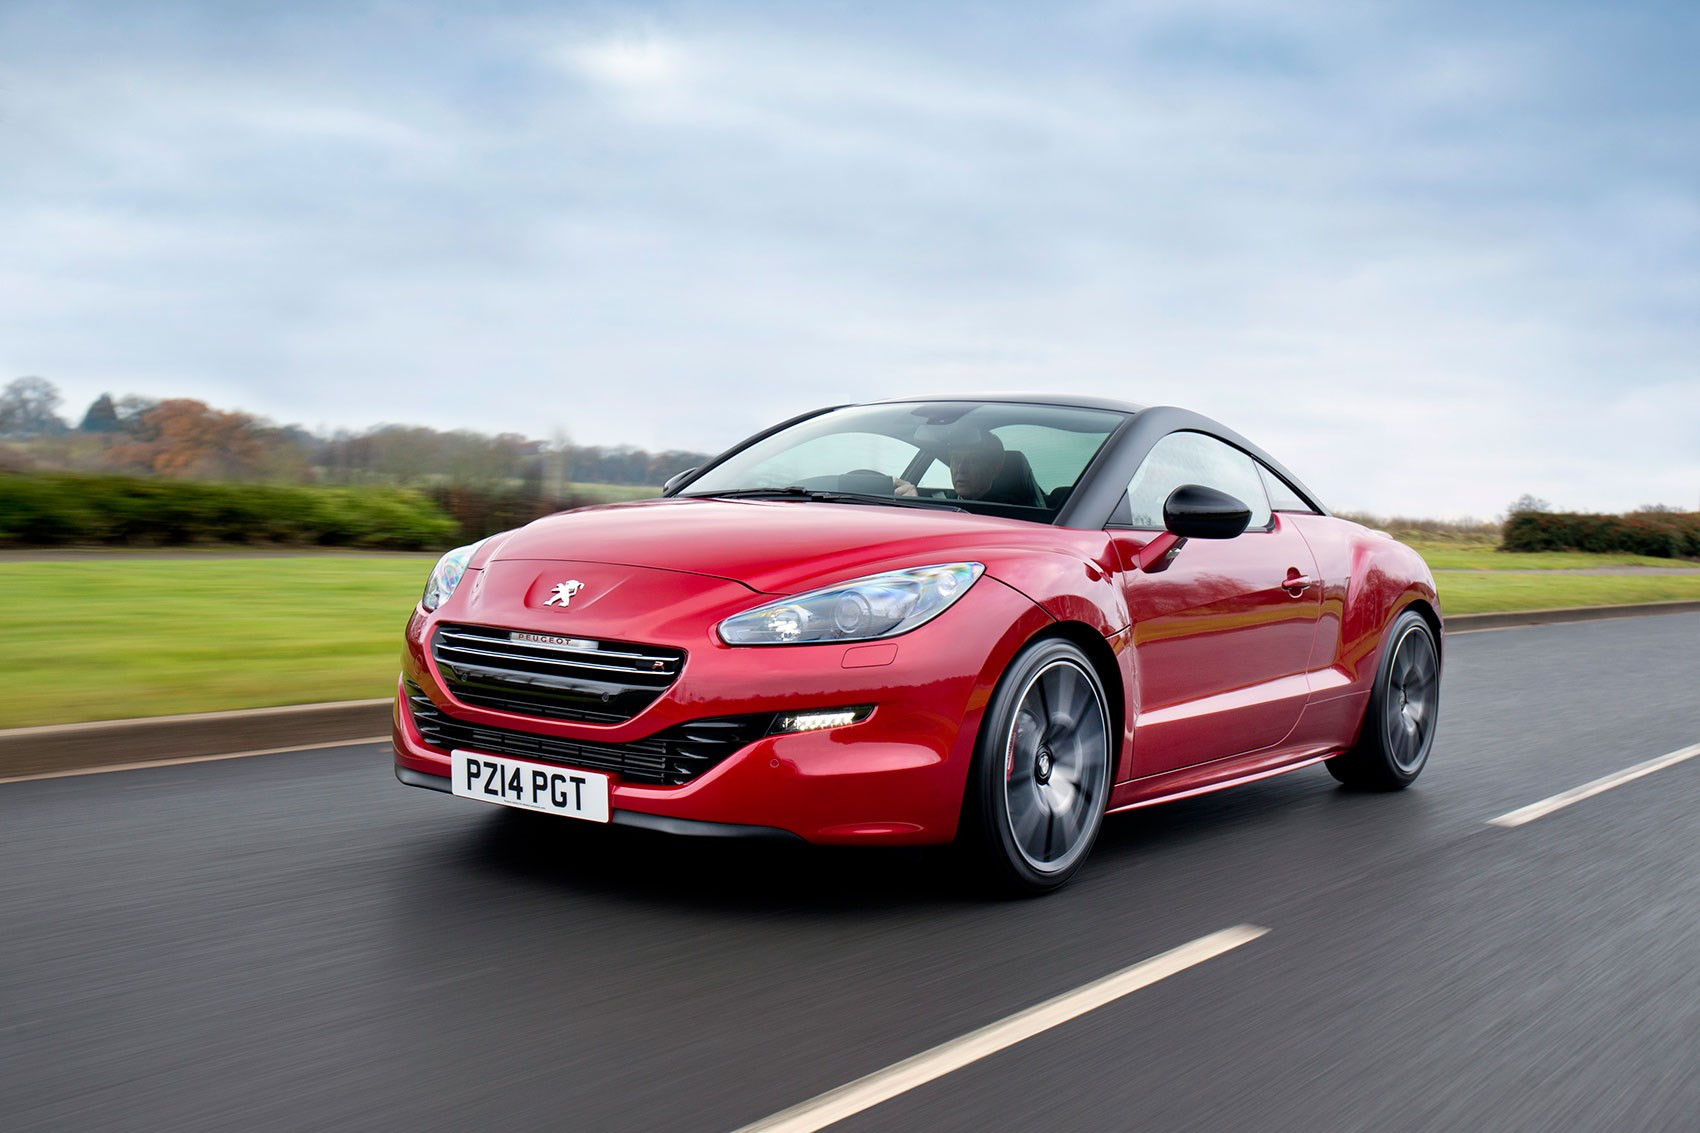 The double-bubble bursts: only 100 Peugeot RCZ coupes left in UK ...